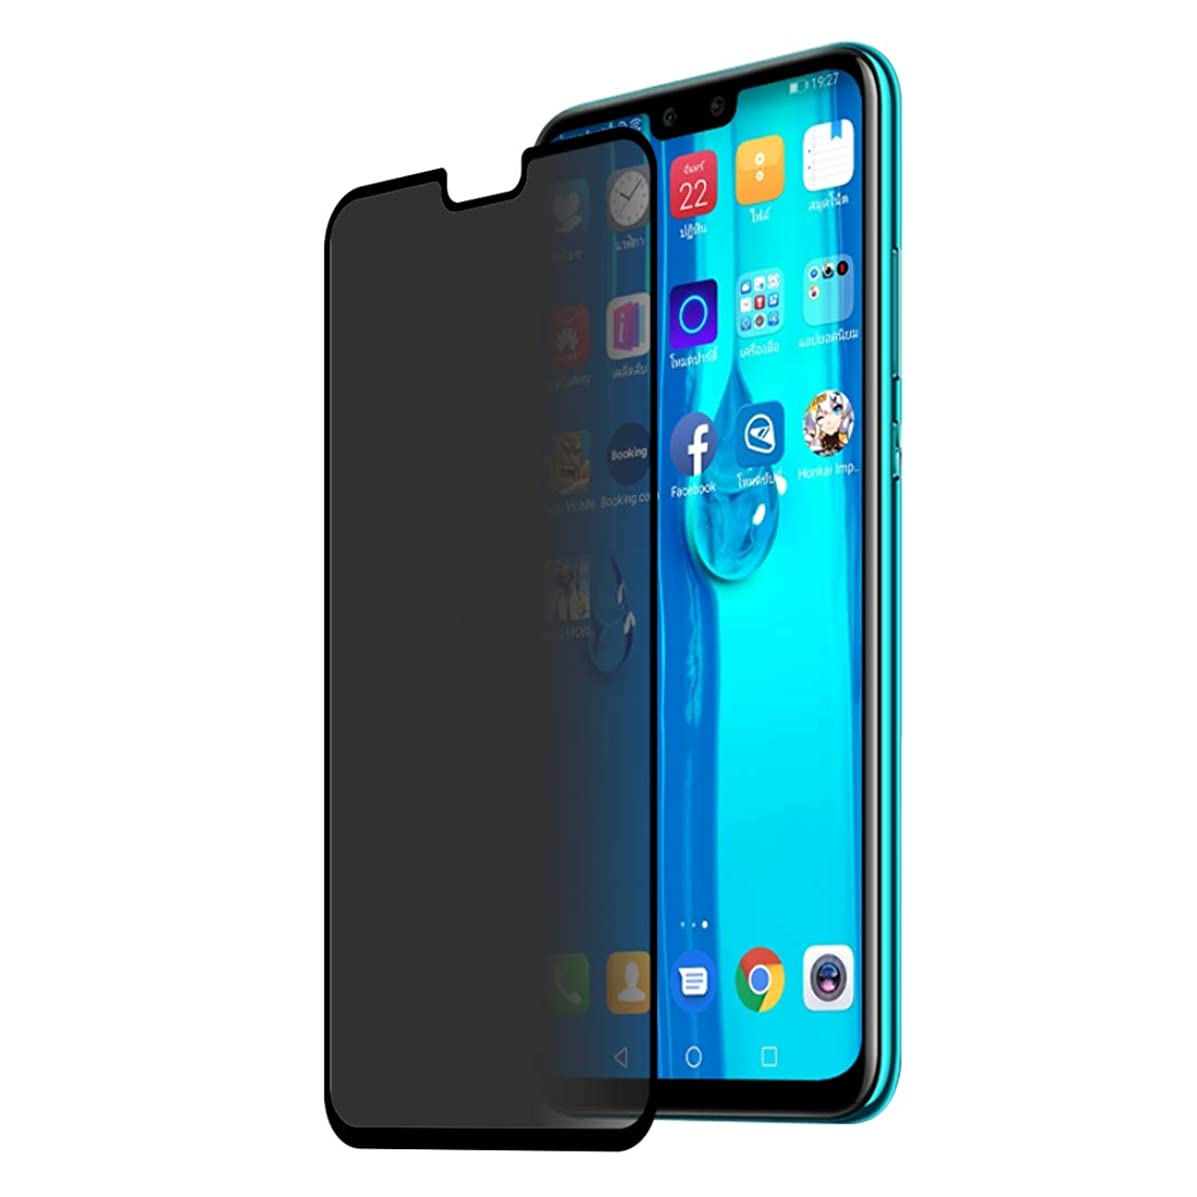 XINGRUI Moblie Glass Screen ENKAY Hat-Prince 0.26mm 9H 2.5D Privacy Anti-Glare Full Screen Tempered Glass Film for Huawei Y9 (2019) / Enjoy 9 Plus